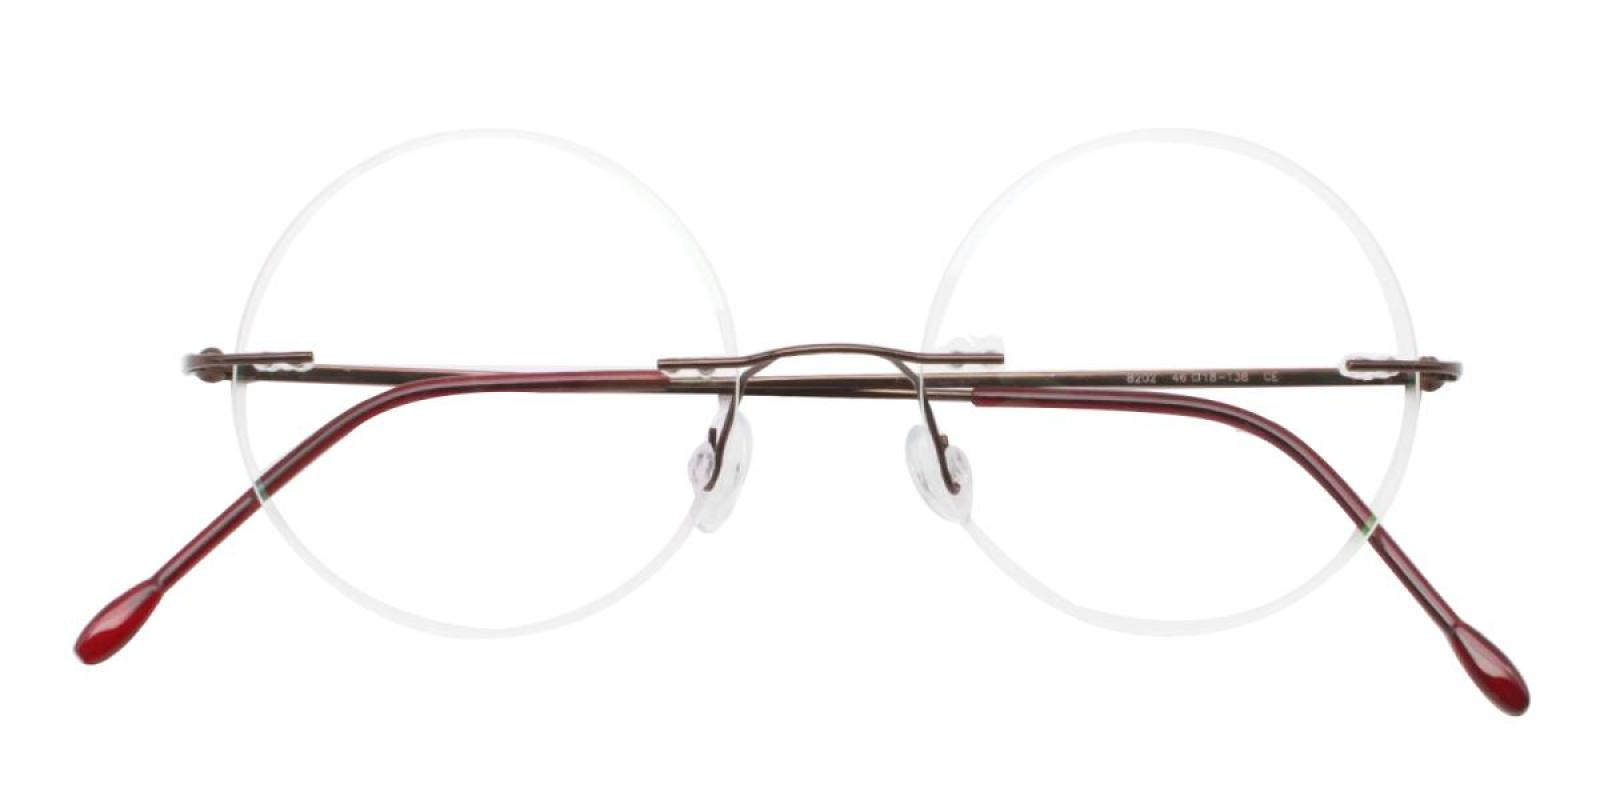 Knewphey-Brown-Varieties-Metal-Eyeglasses-detail